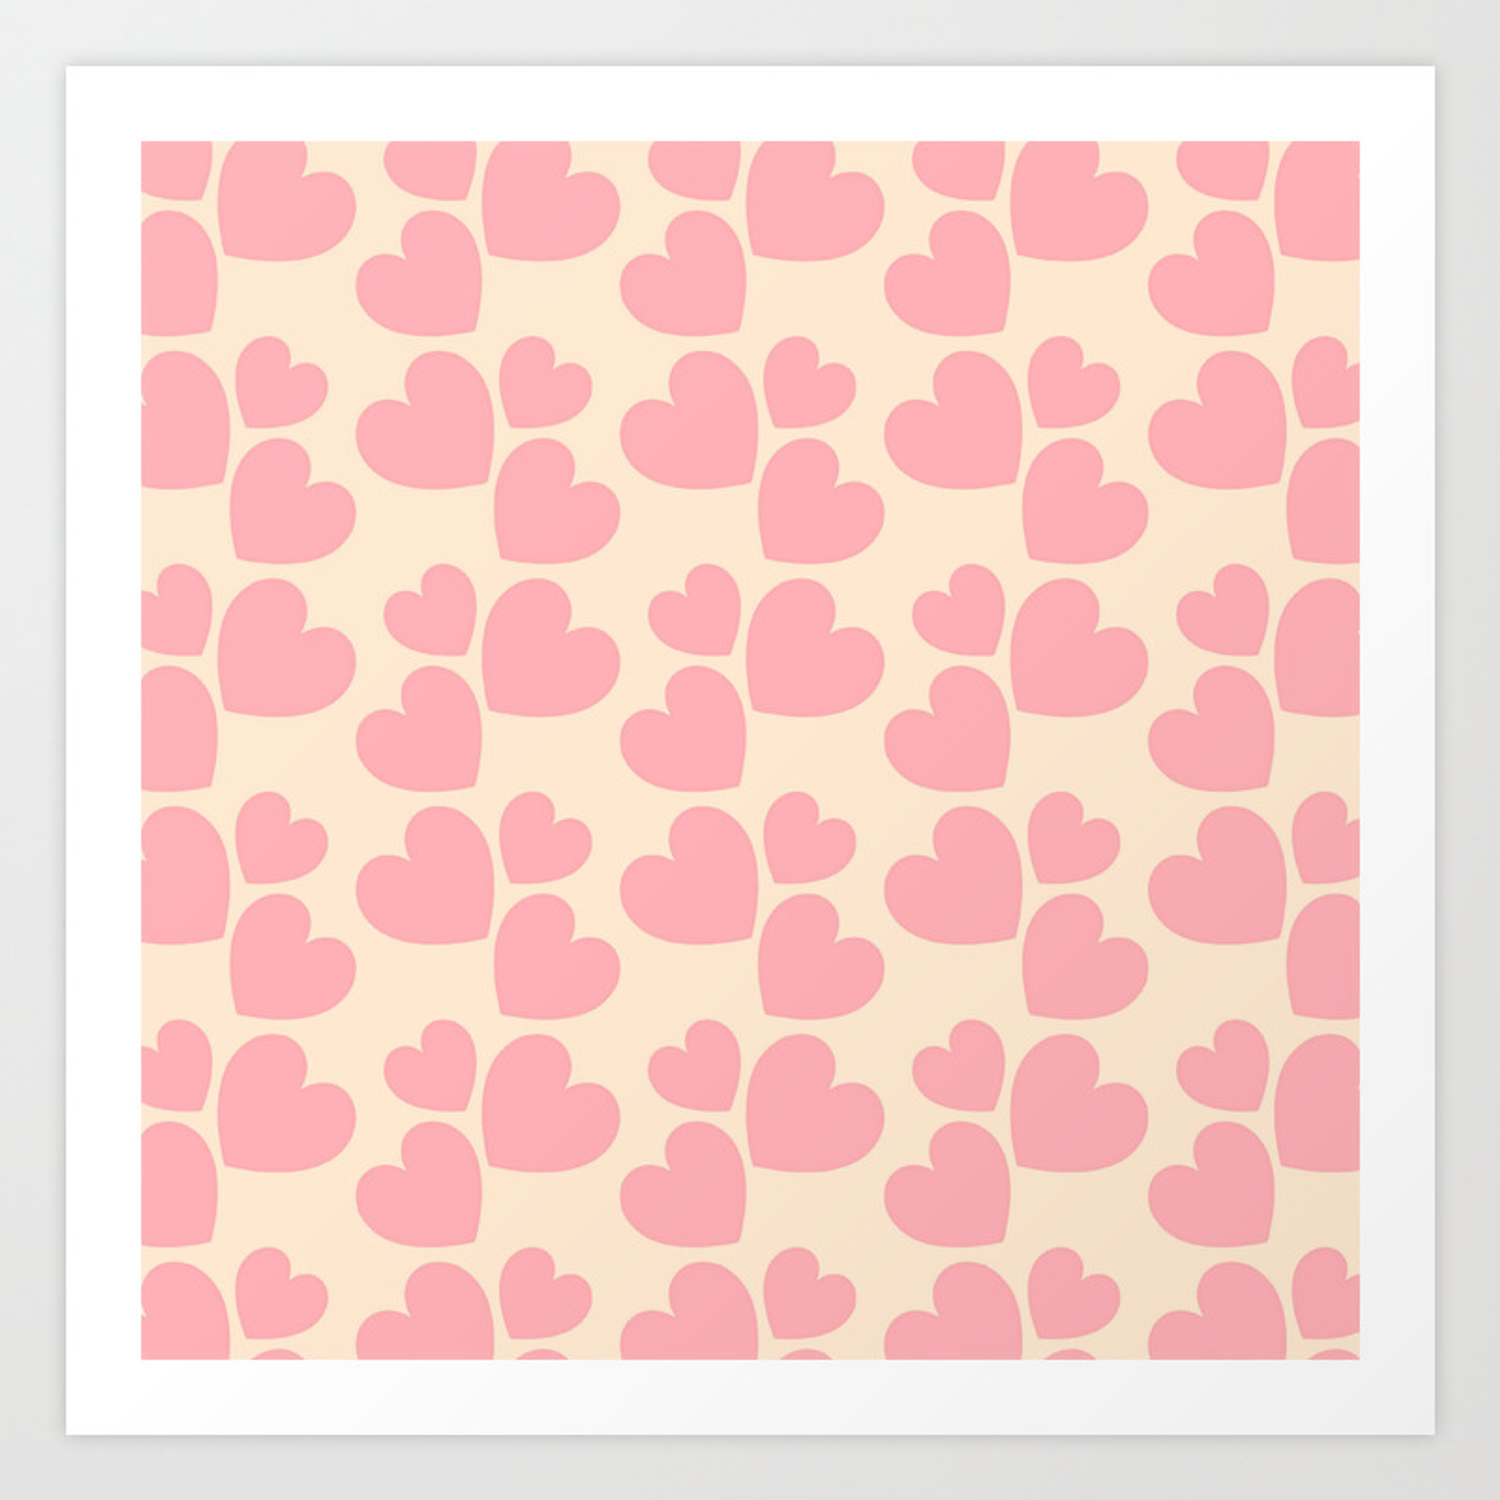 Pictures of love hearts to print